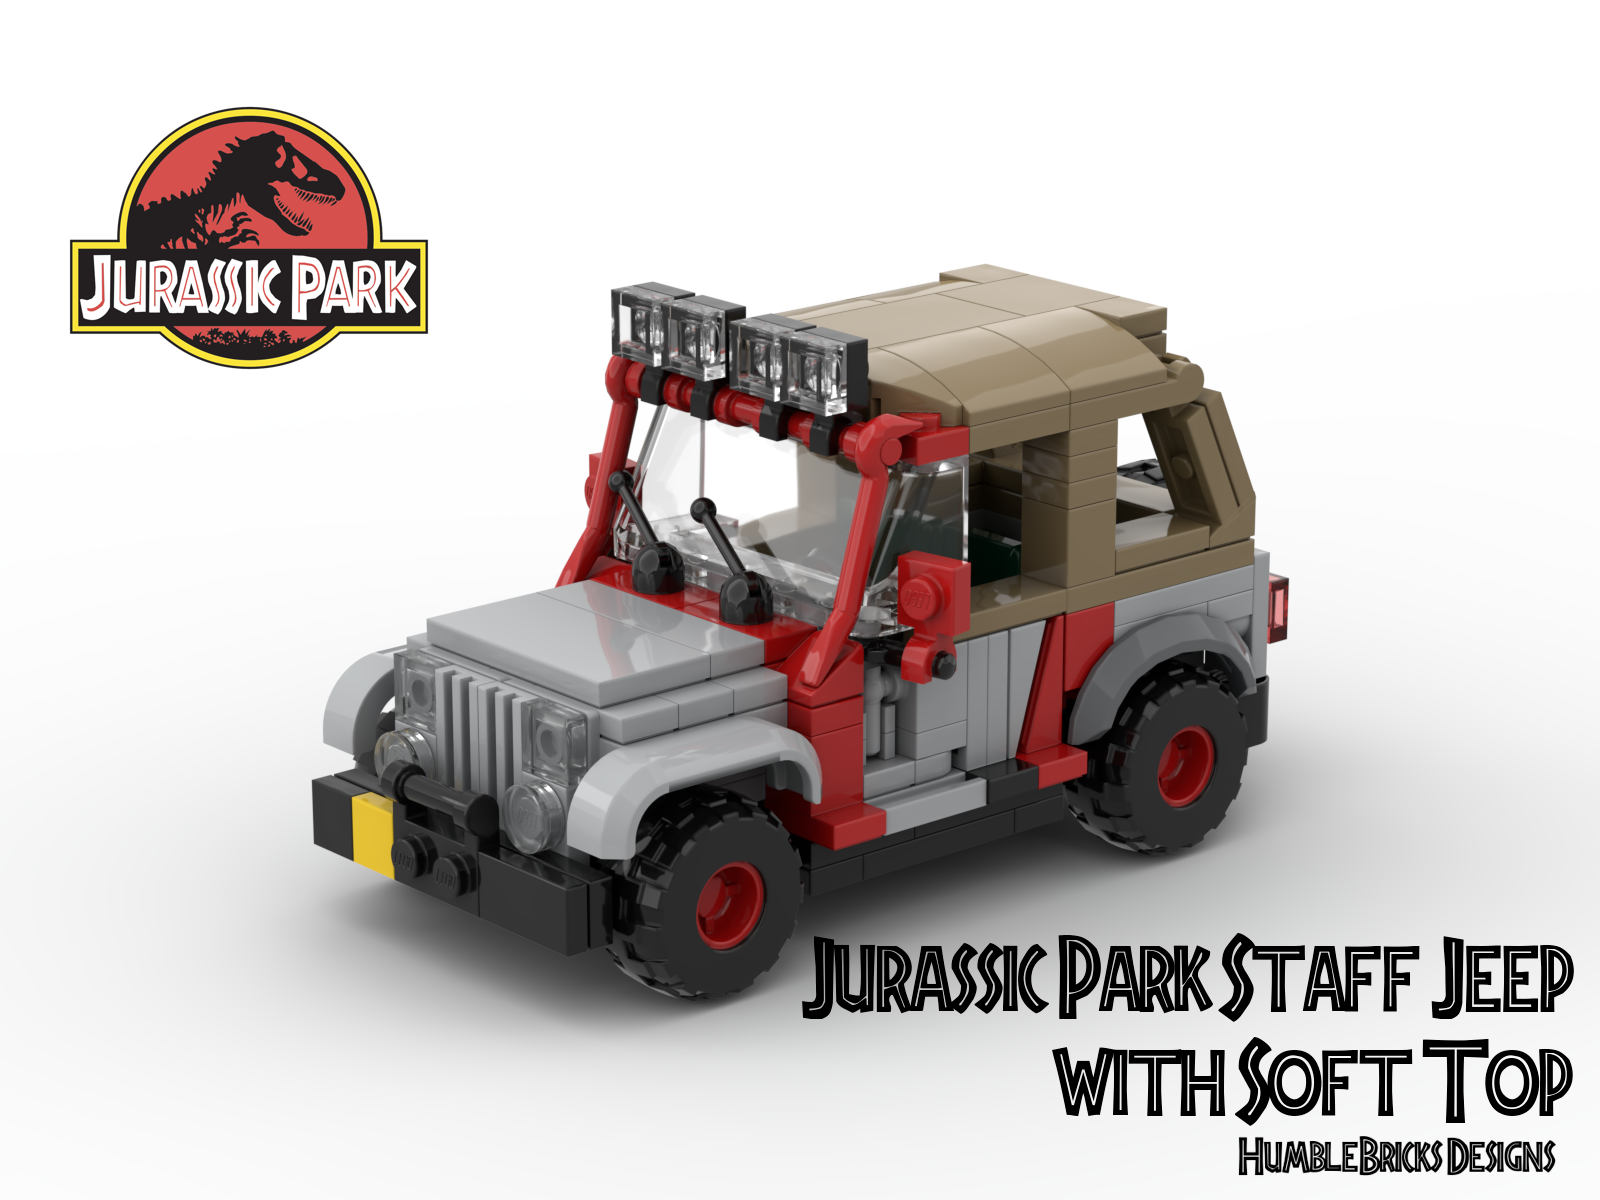 Jurassic Park Staff Vehicle Jeep Wrangler_v3_Covered_StudioRender3 copy